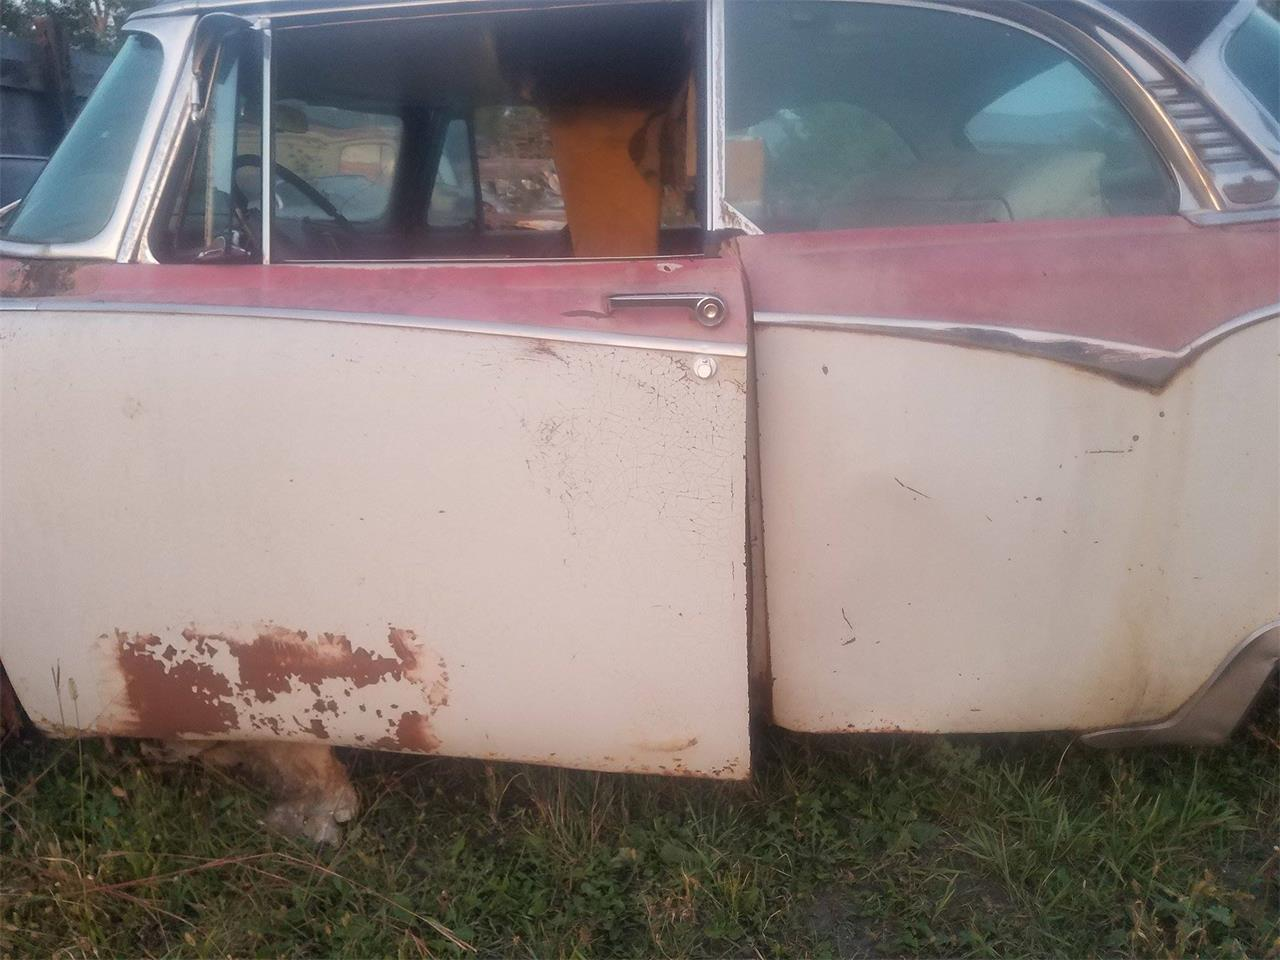 Large Picture of 1955 Dodge Royal Lancer located in Minnesota - $2,000.00 Offered by Backyard Classics - LVIN